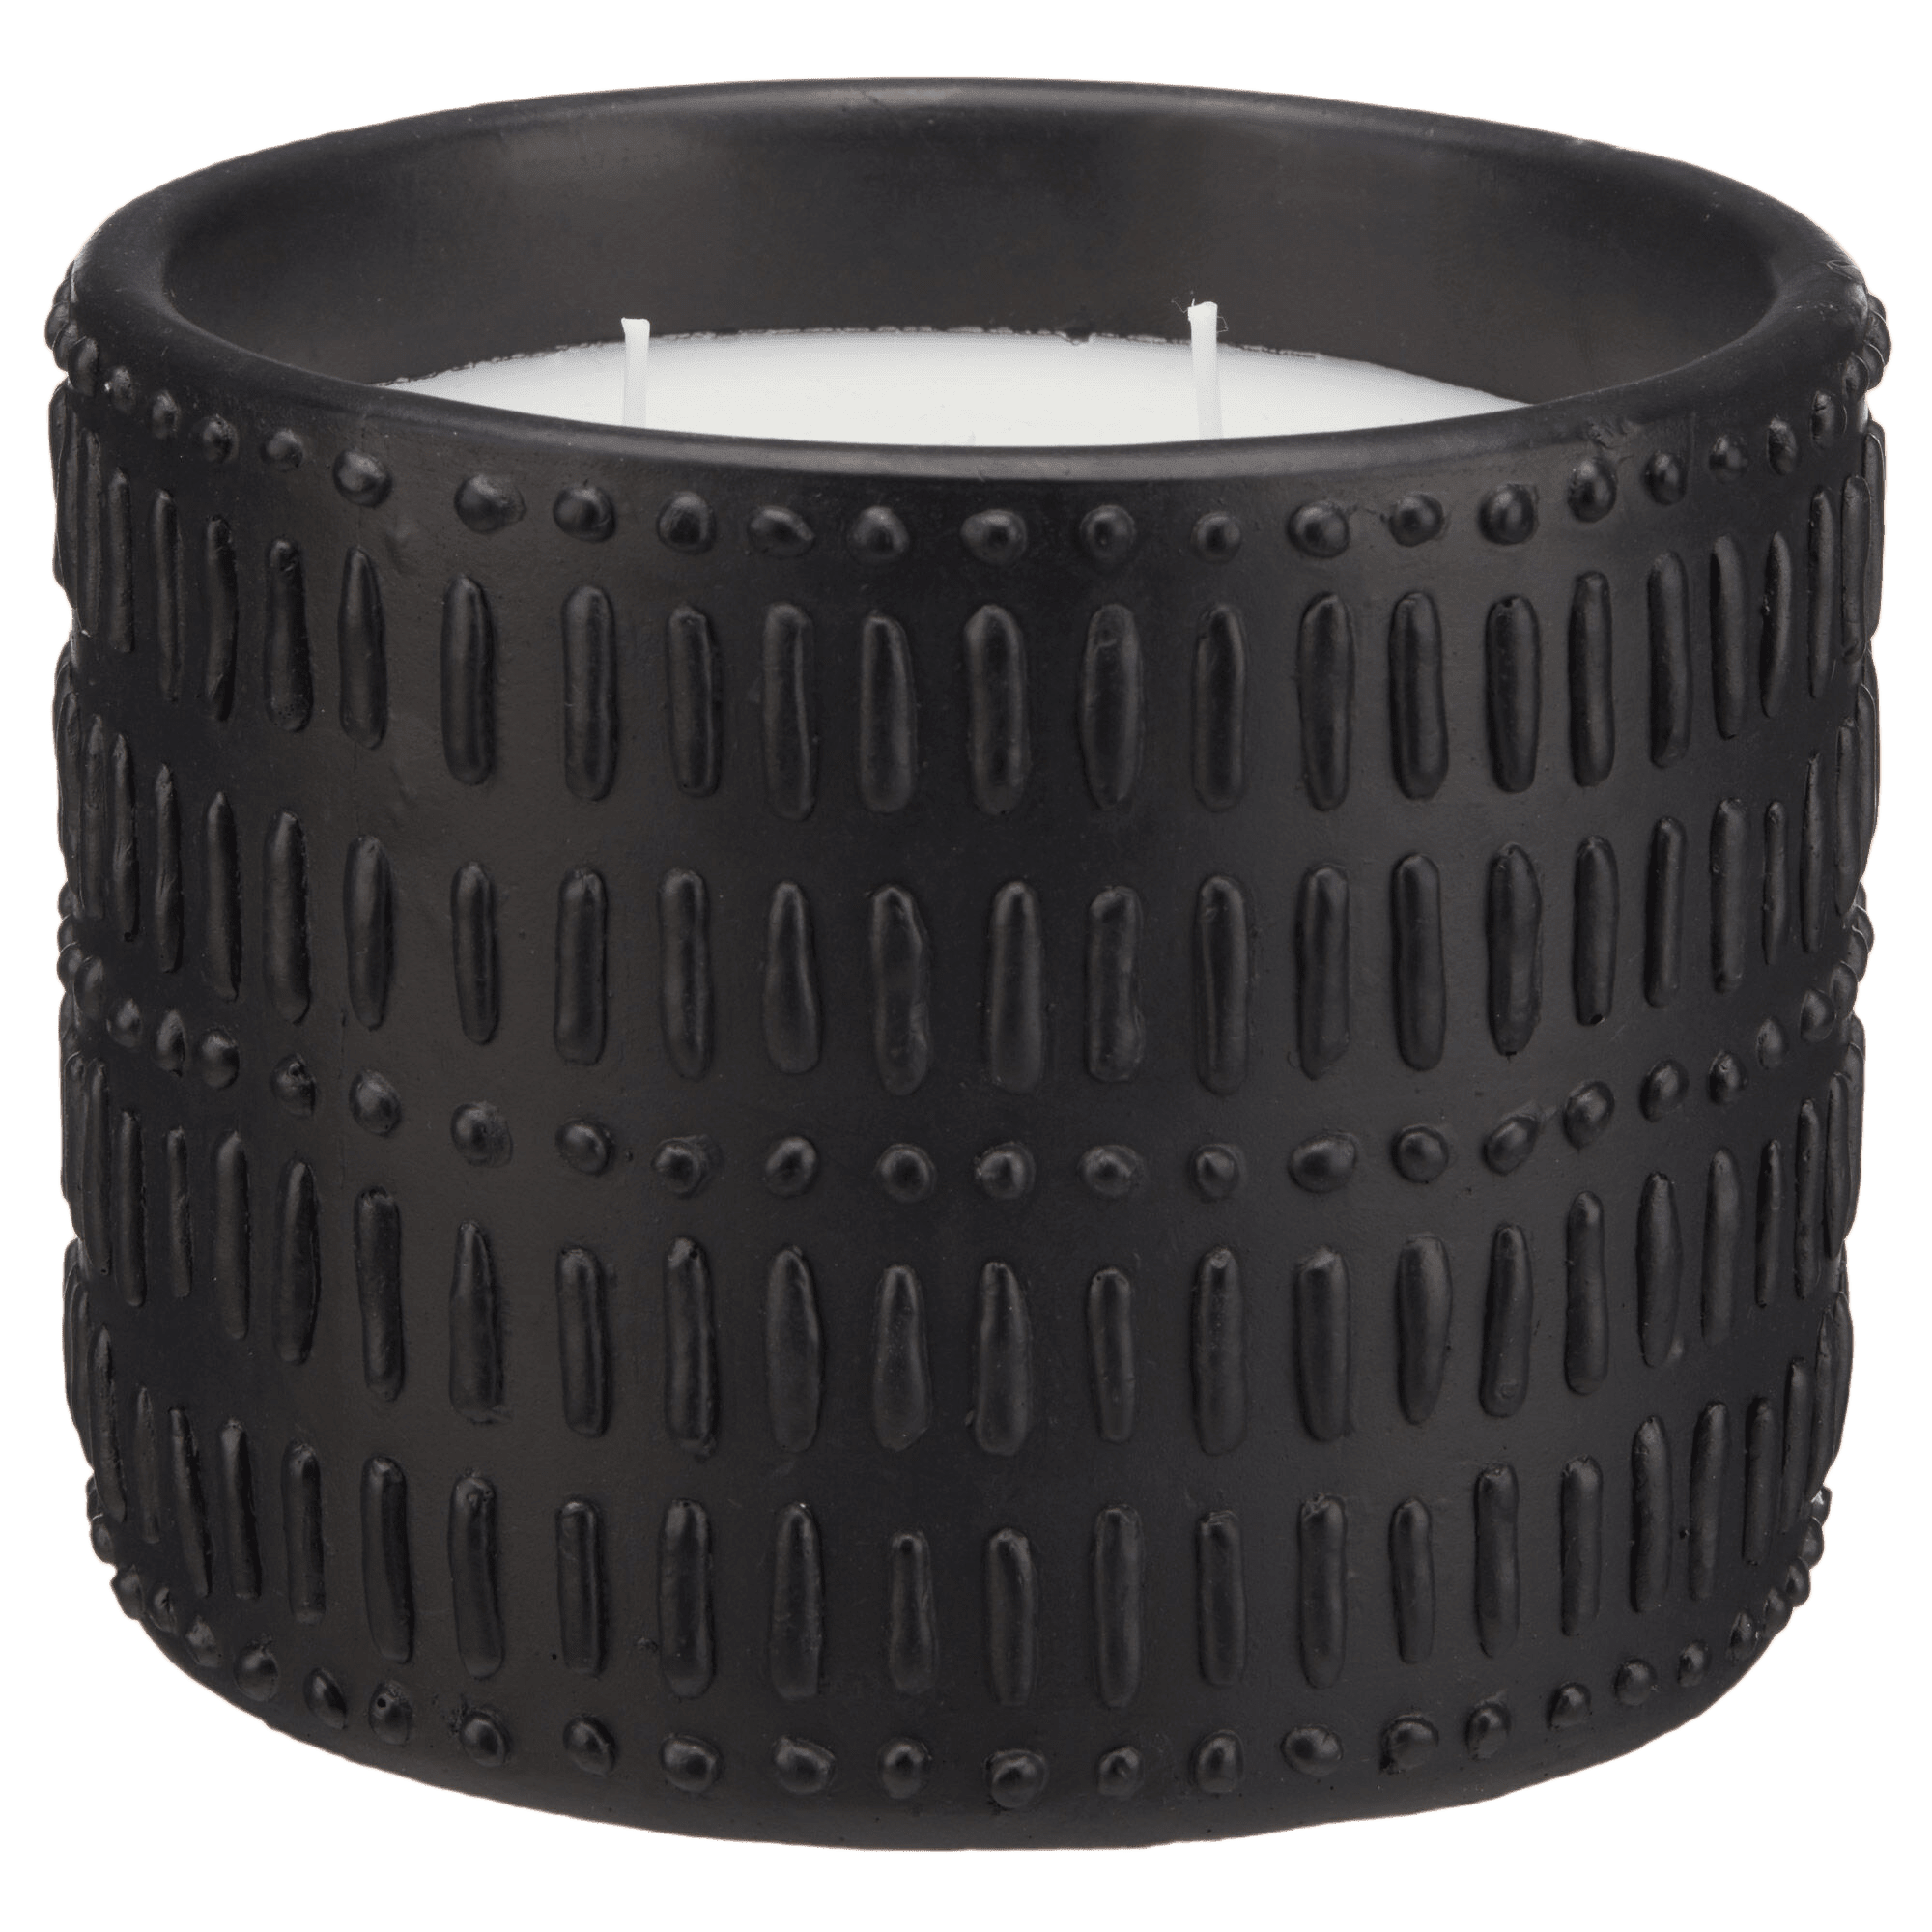 Candle in Artisanal Black Cement Holder